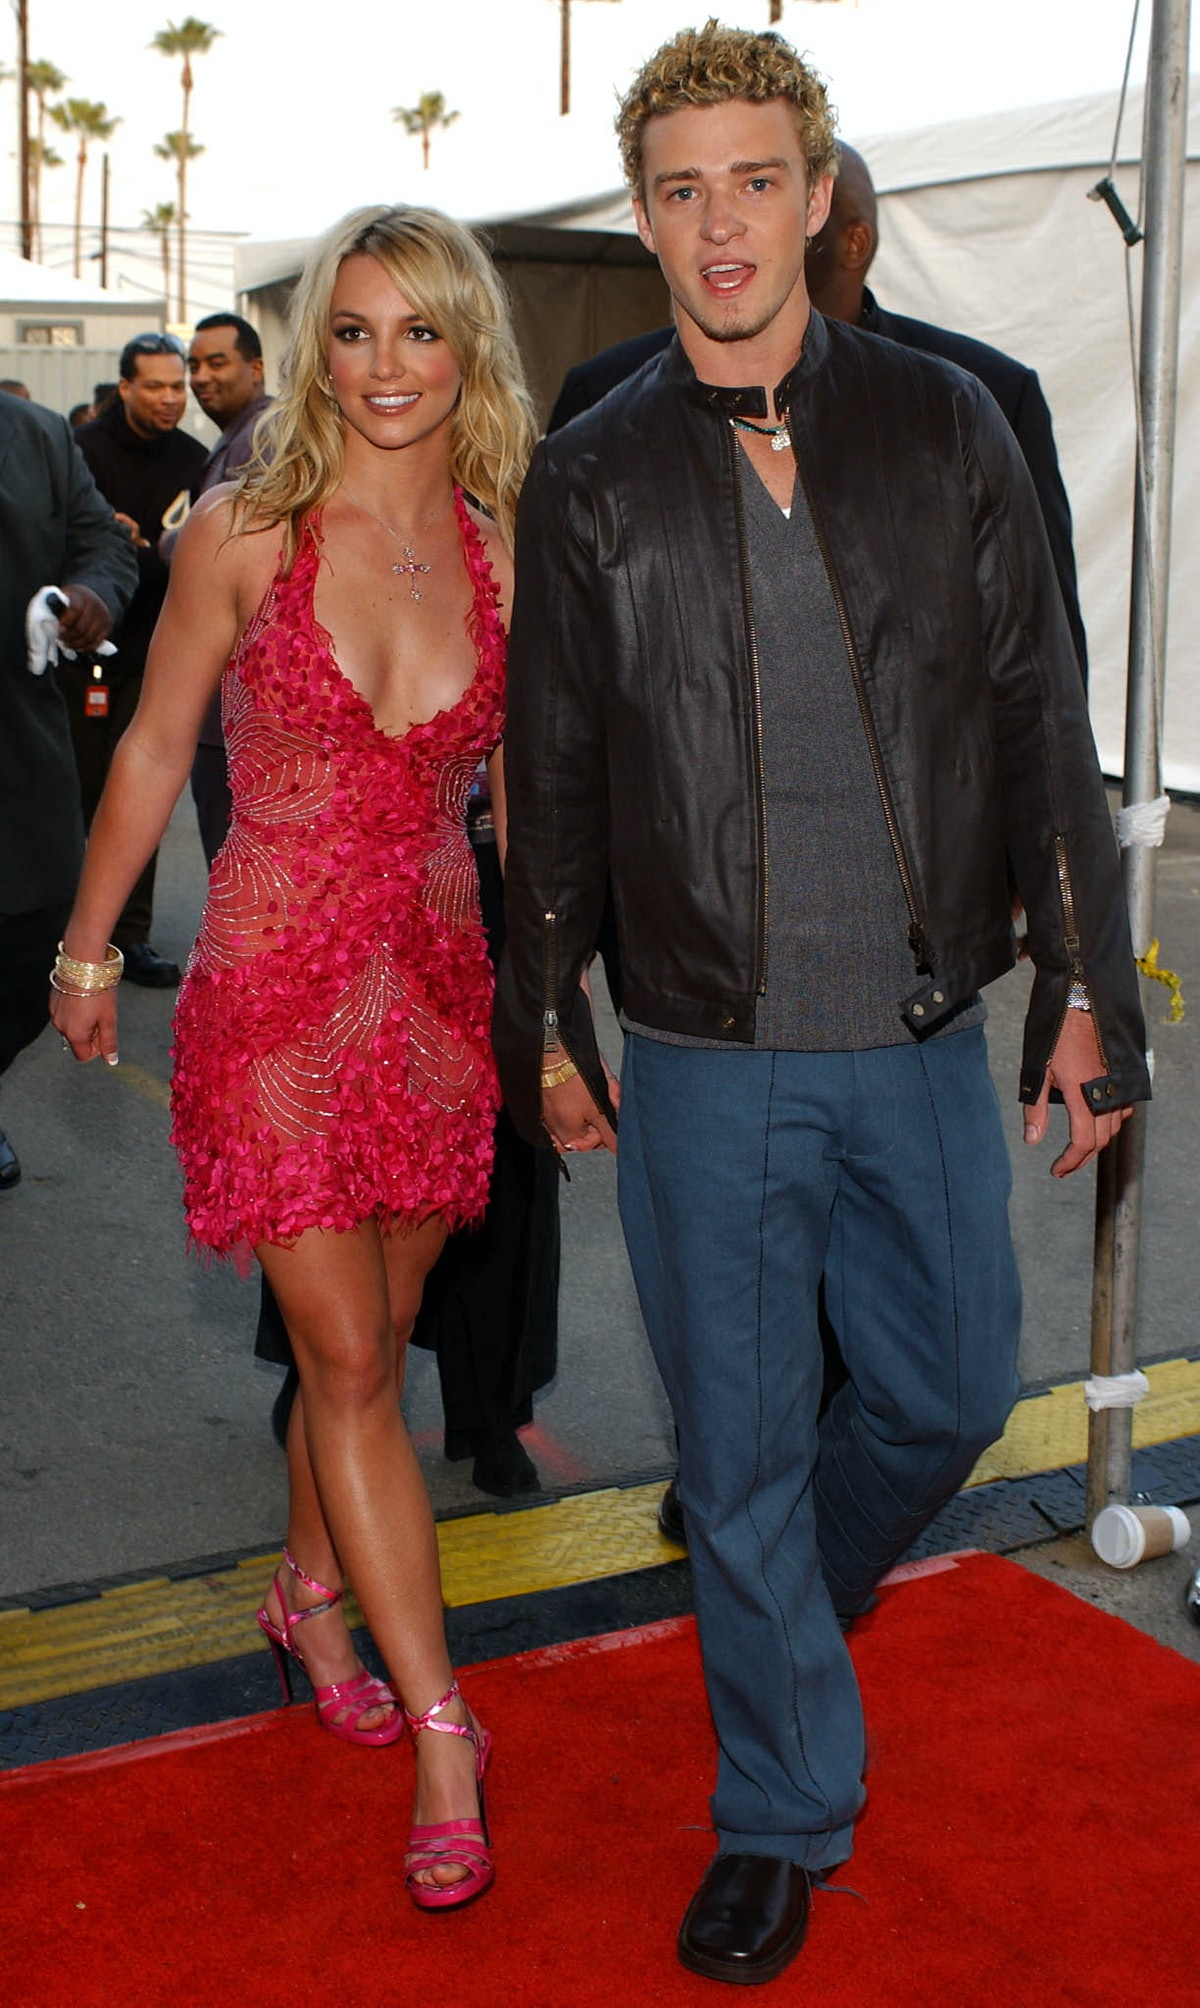 Justin Timberlake shaded Britney Spears several times after their public breakup, airing their sex l...